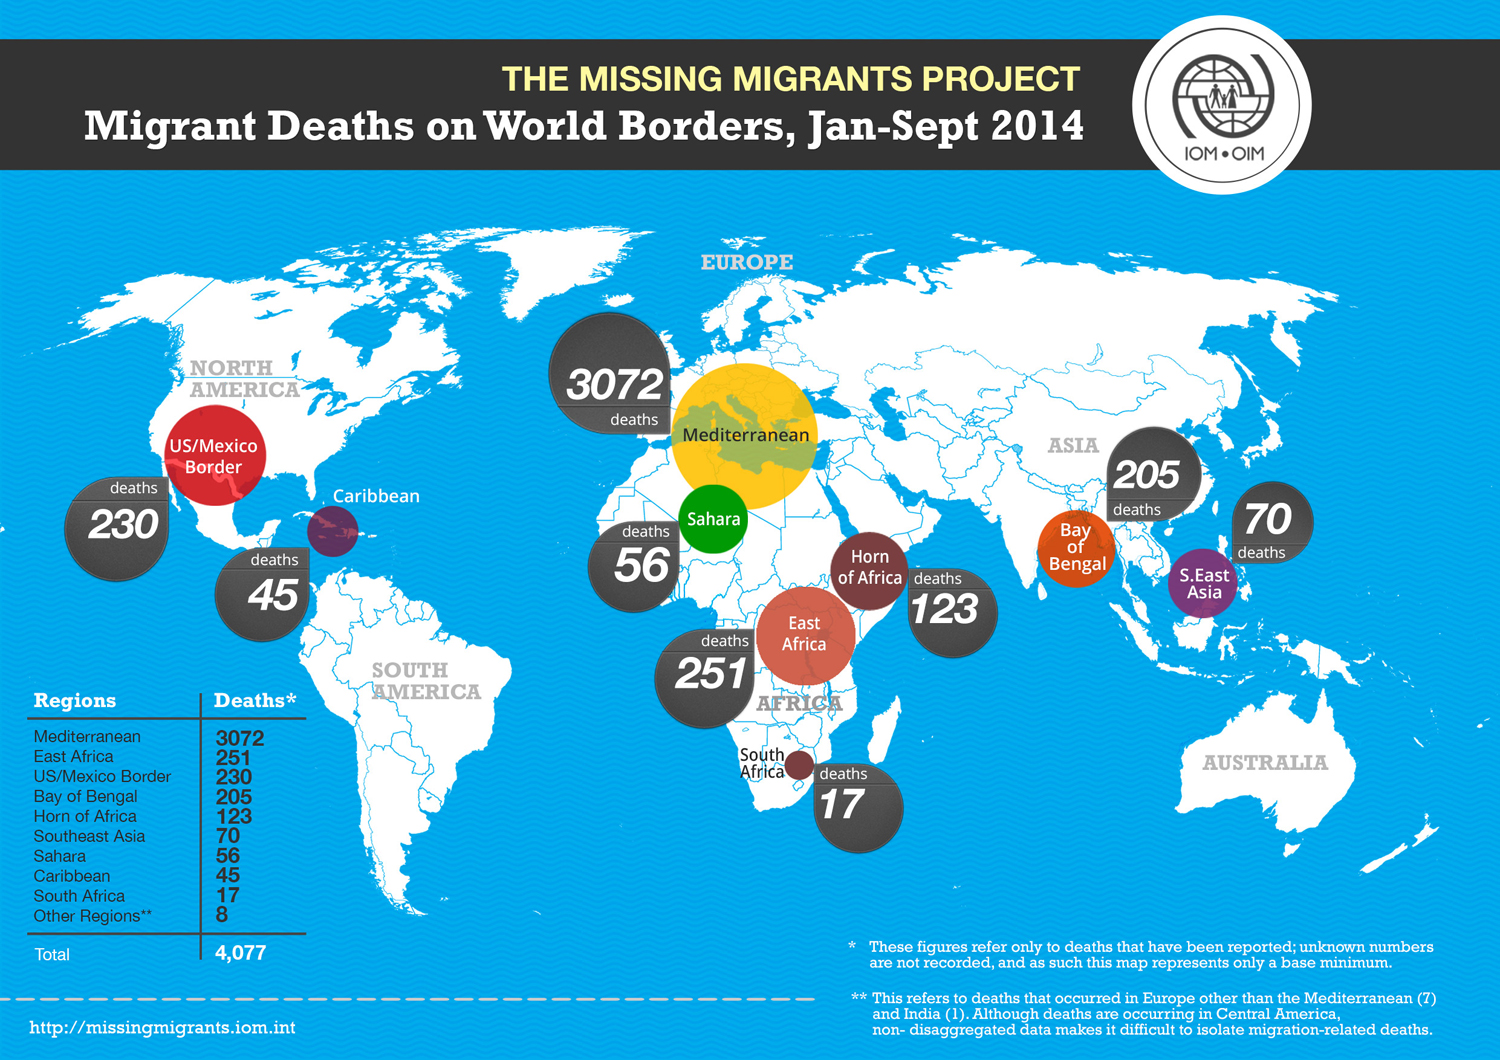 http://www.iom.int/files/live/sites/iom/files/pbn/photos/MissingMigrantsProject2014.jpg